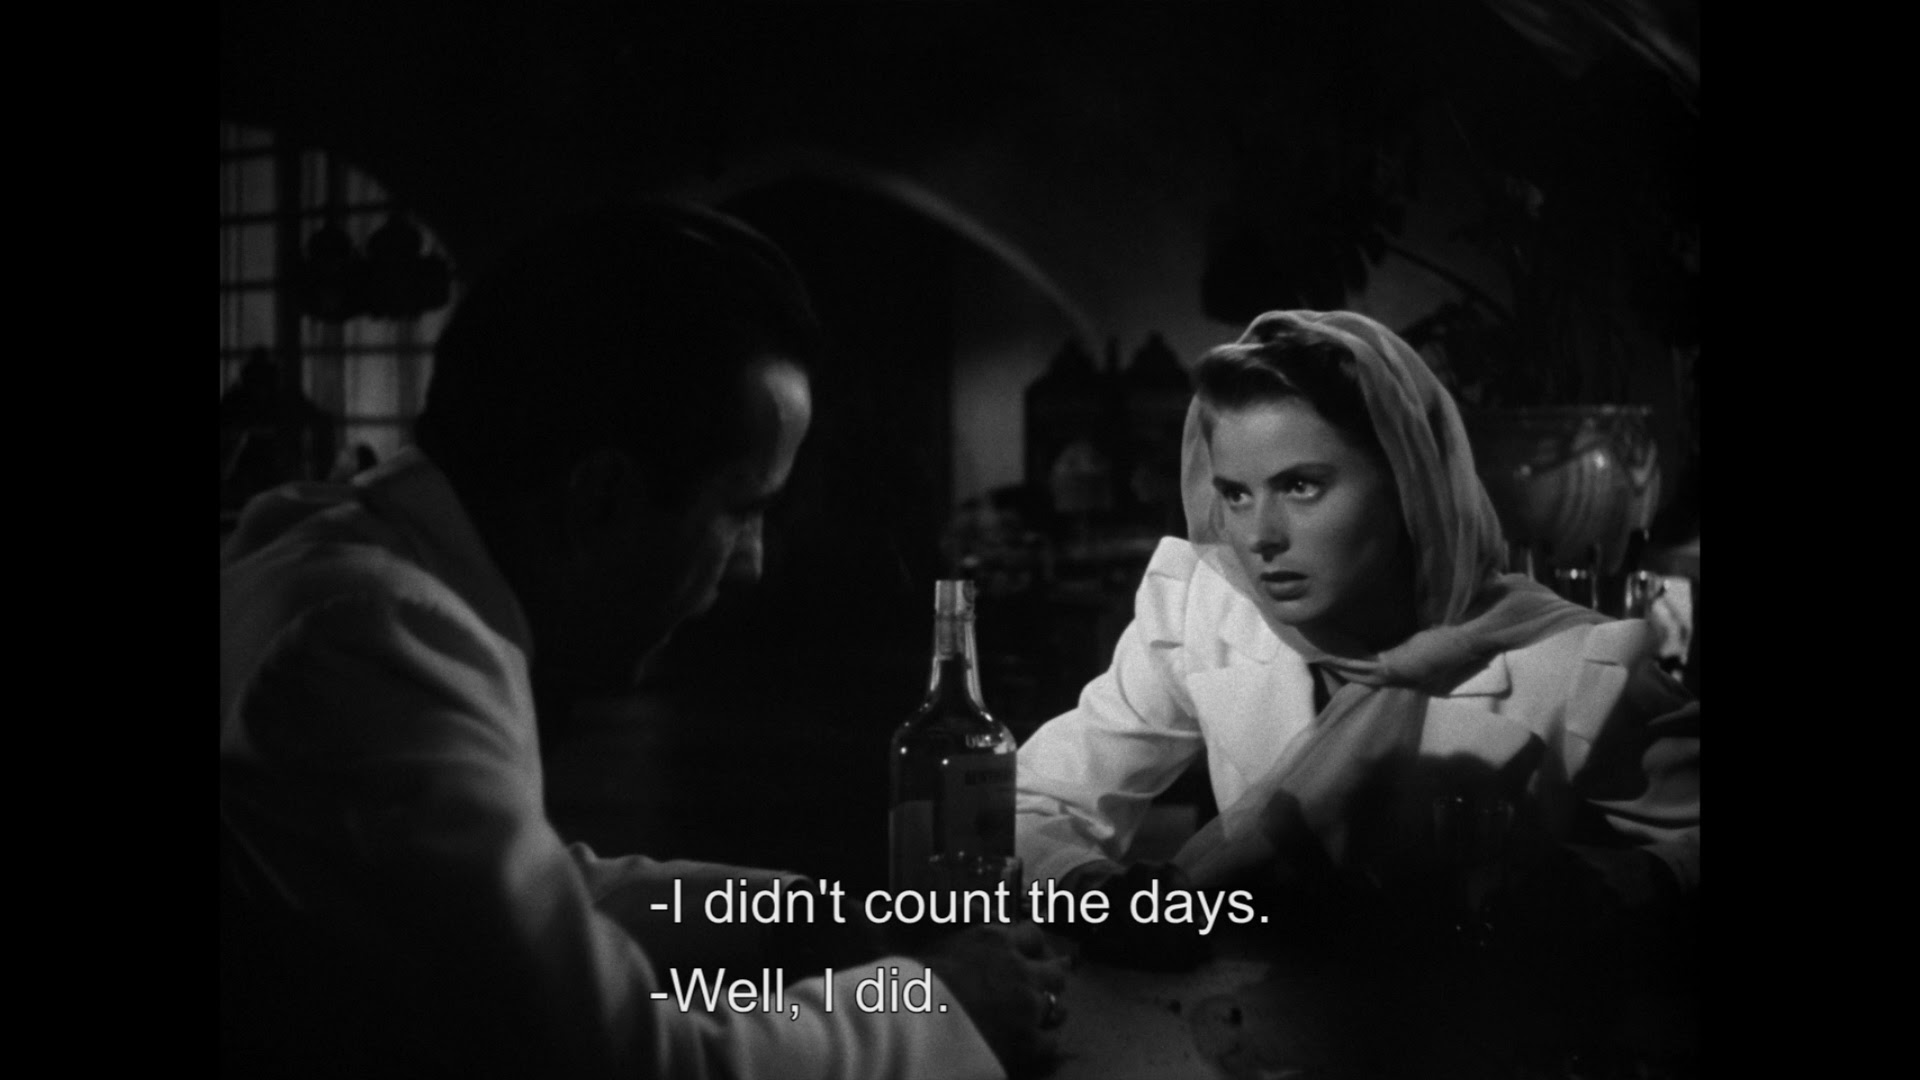 Casablanca Movie Quotes Love Thousands Of Inspiration Quotes About Love And Life